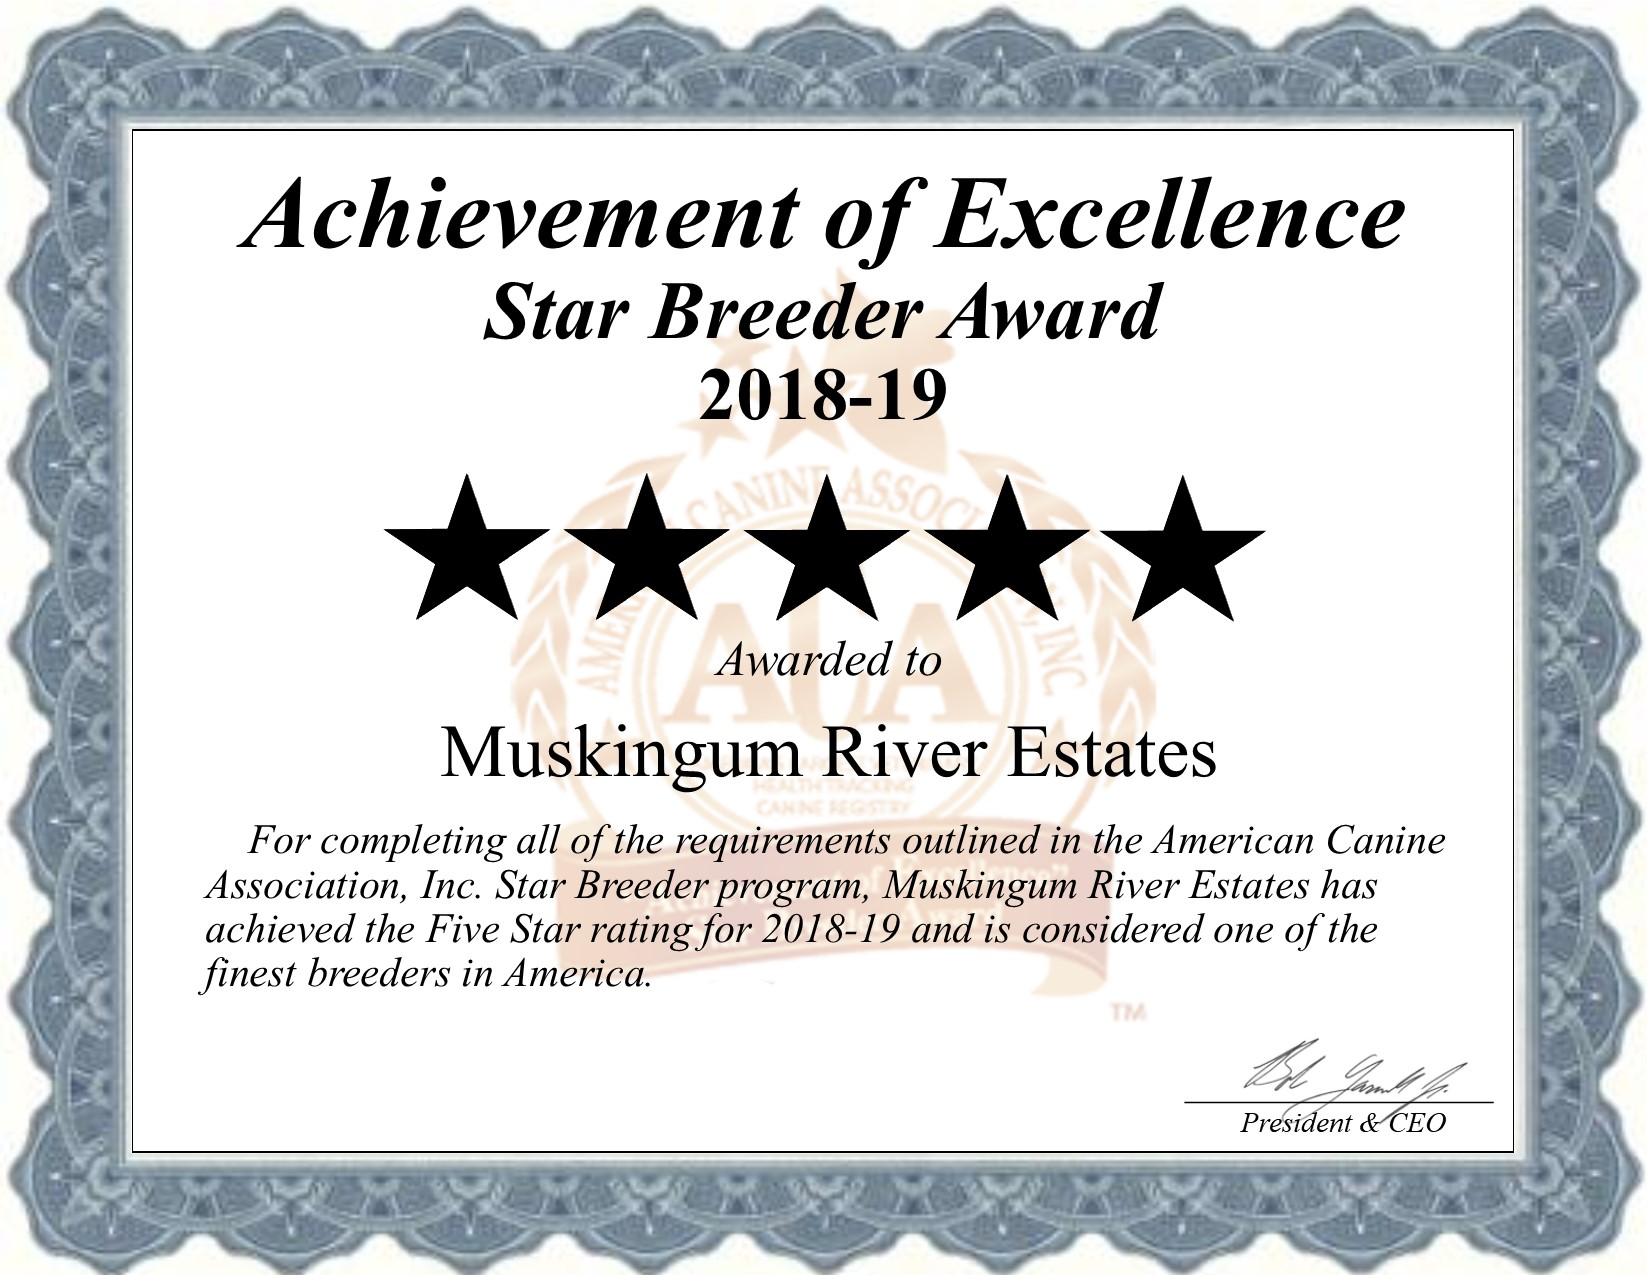 muskingum, river, estates, certificatre, millersburg, ohio, oh, kennel, kennels, muskingumriverestates, dog, breeder, about, information, history, background, reviews, rating, dogbreeder, puppy, usda